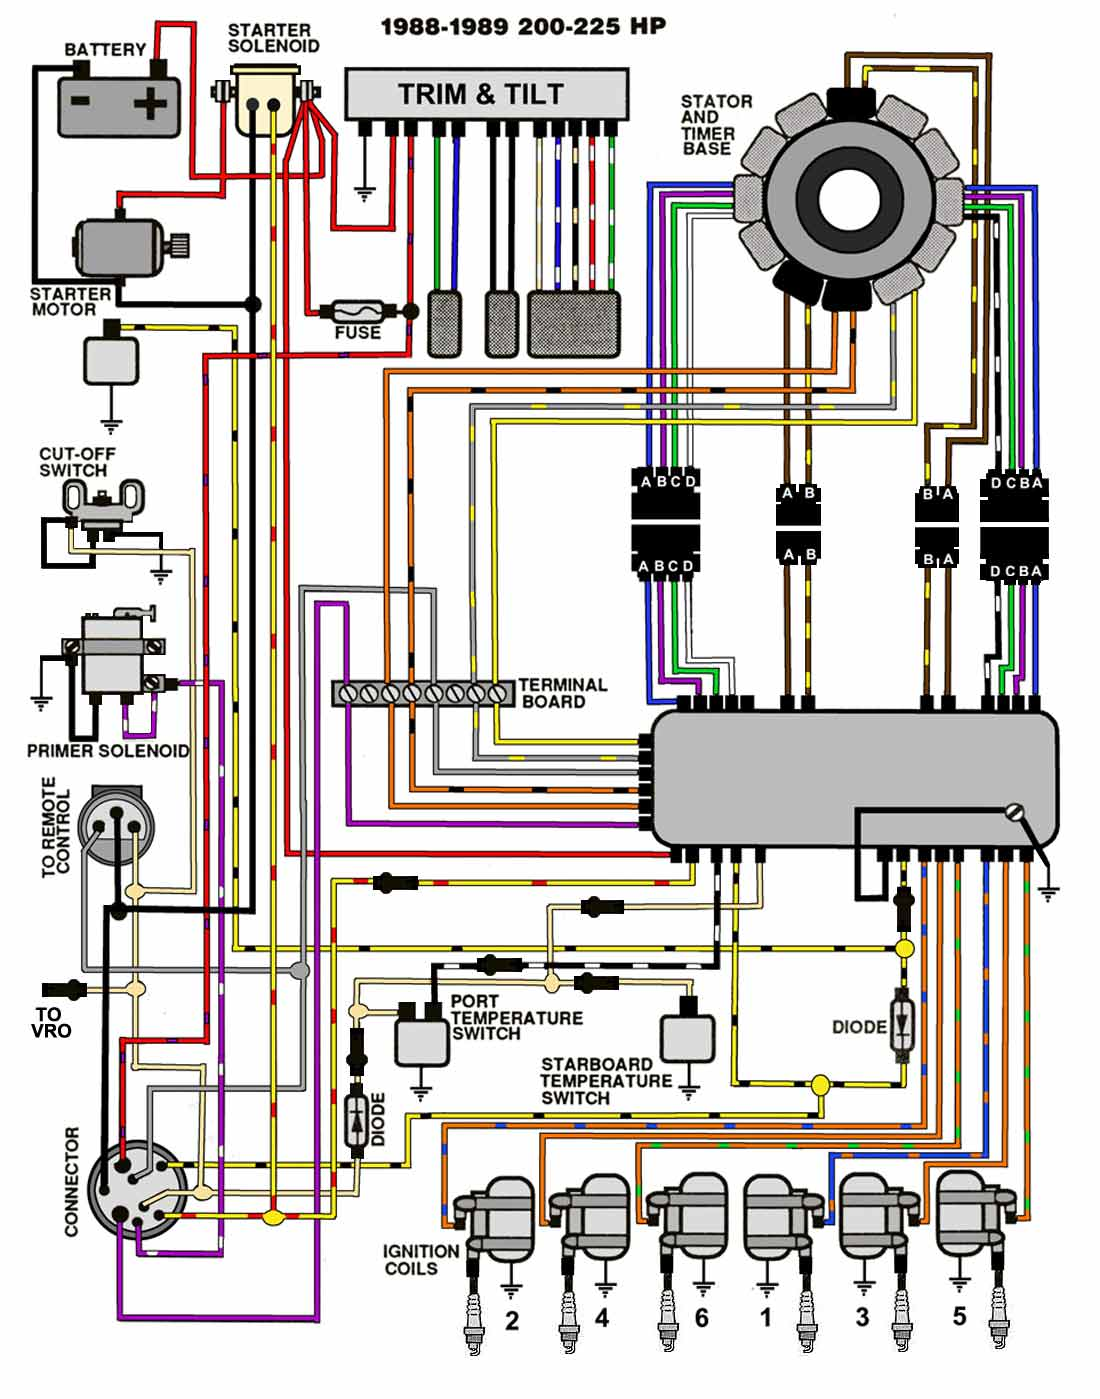 175 Hp Mercury Outboard Wiring Diagram Good 1st 25 Schematics For Johnson Outboards Simple Rh 14 Mara Cujas De